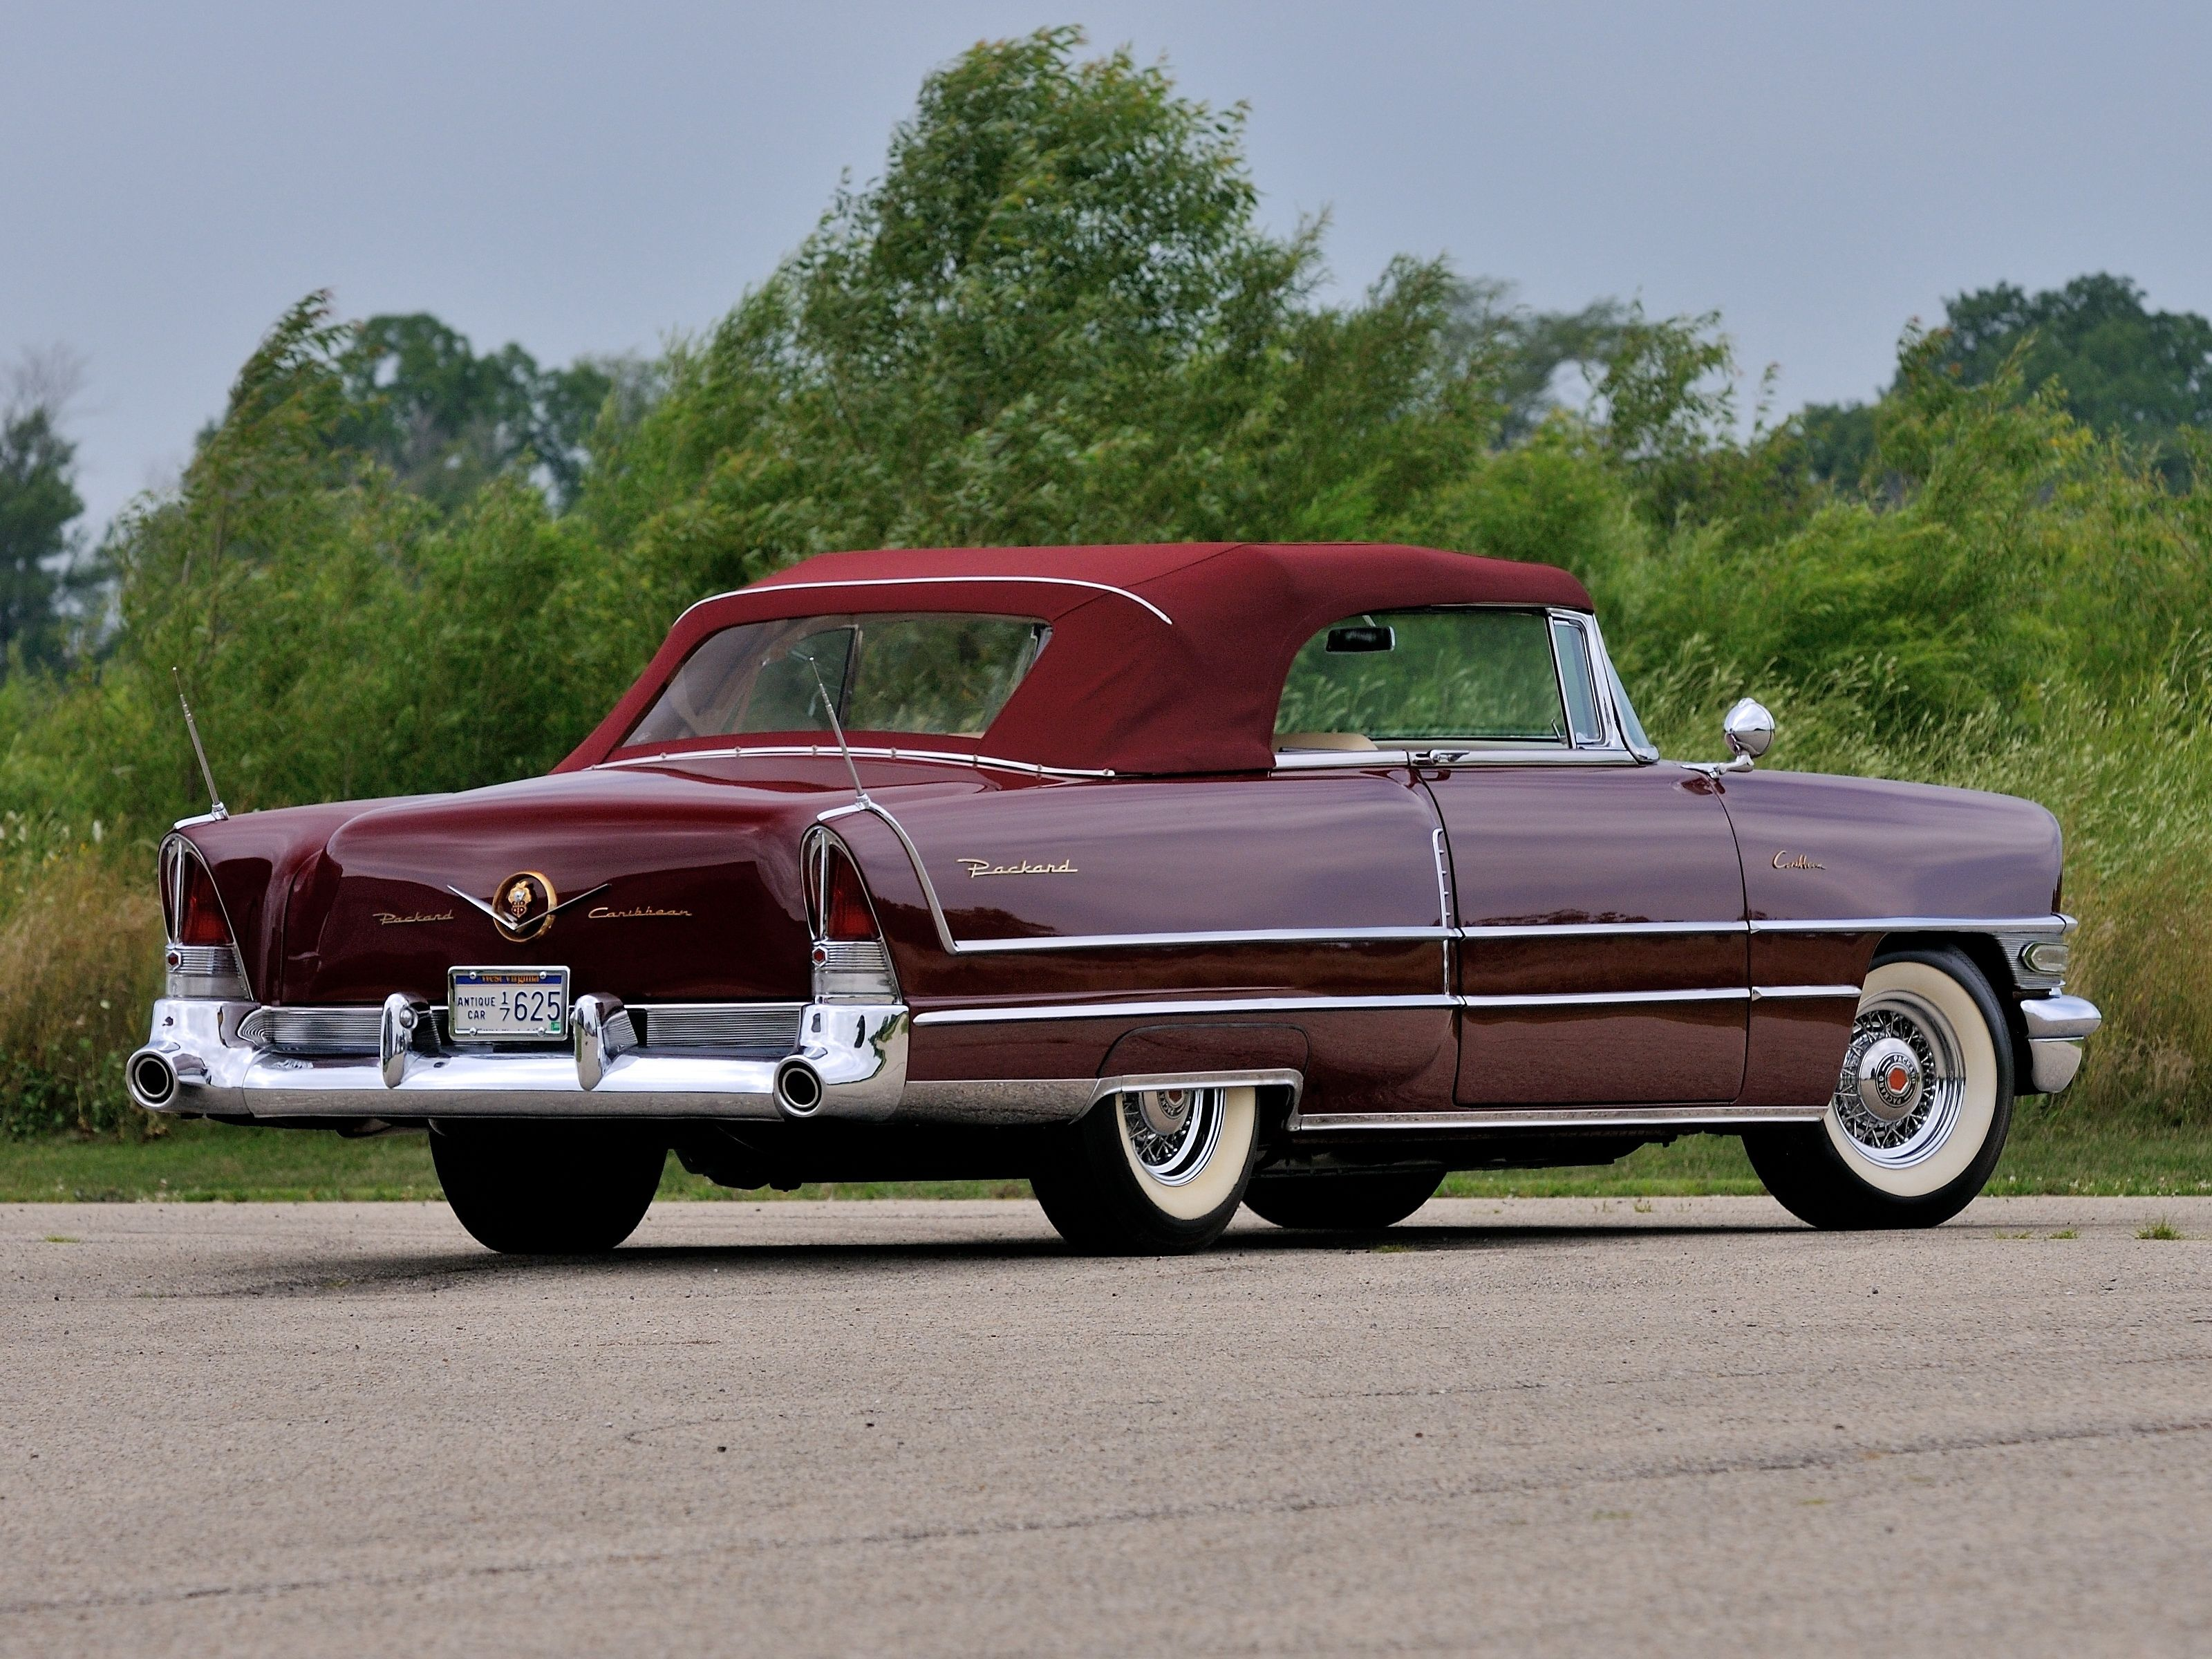 1950s cars with names 1950 cadillac packard super deluxe convertible cabriolet roadster art deco transportation pinterest cadillac